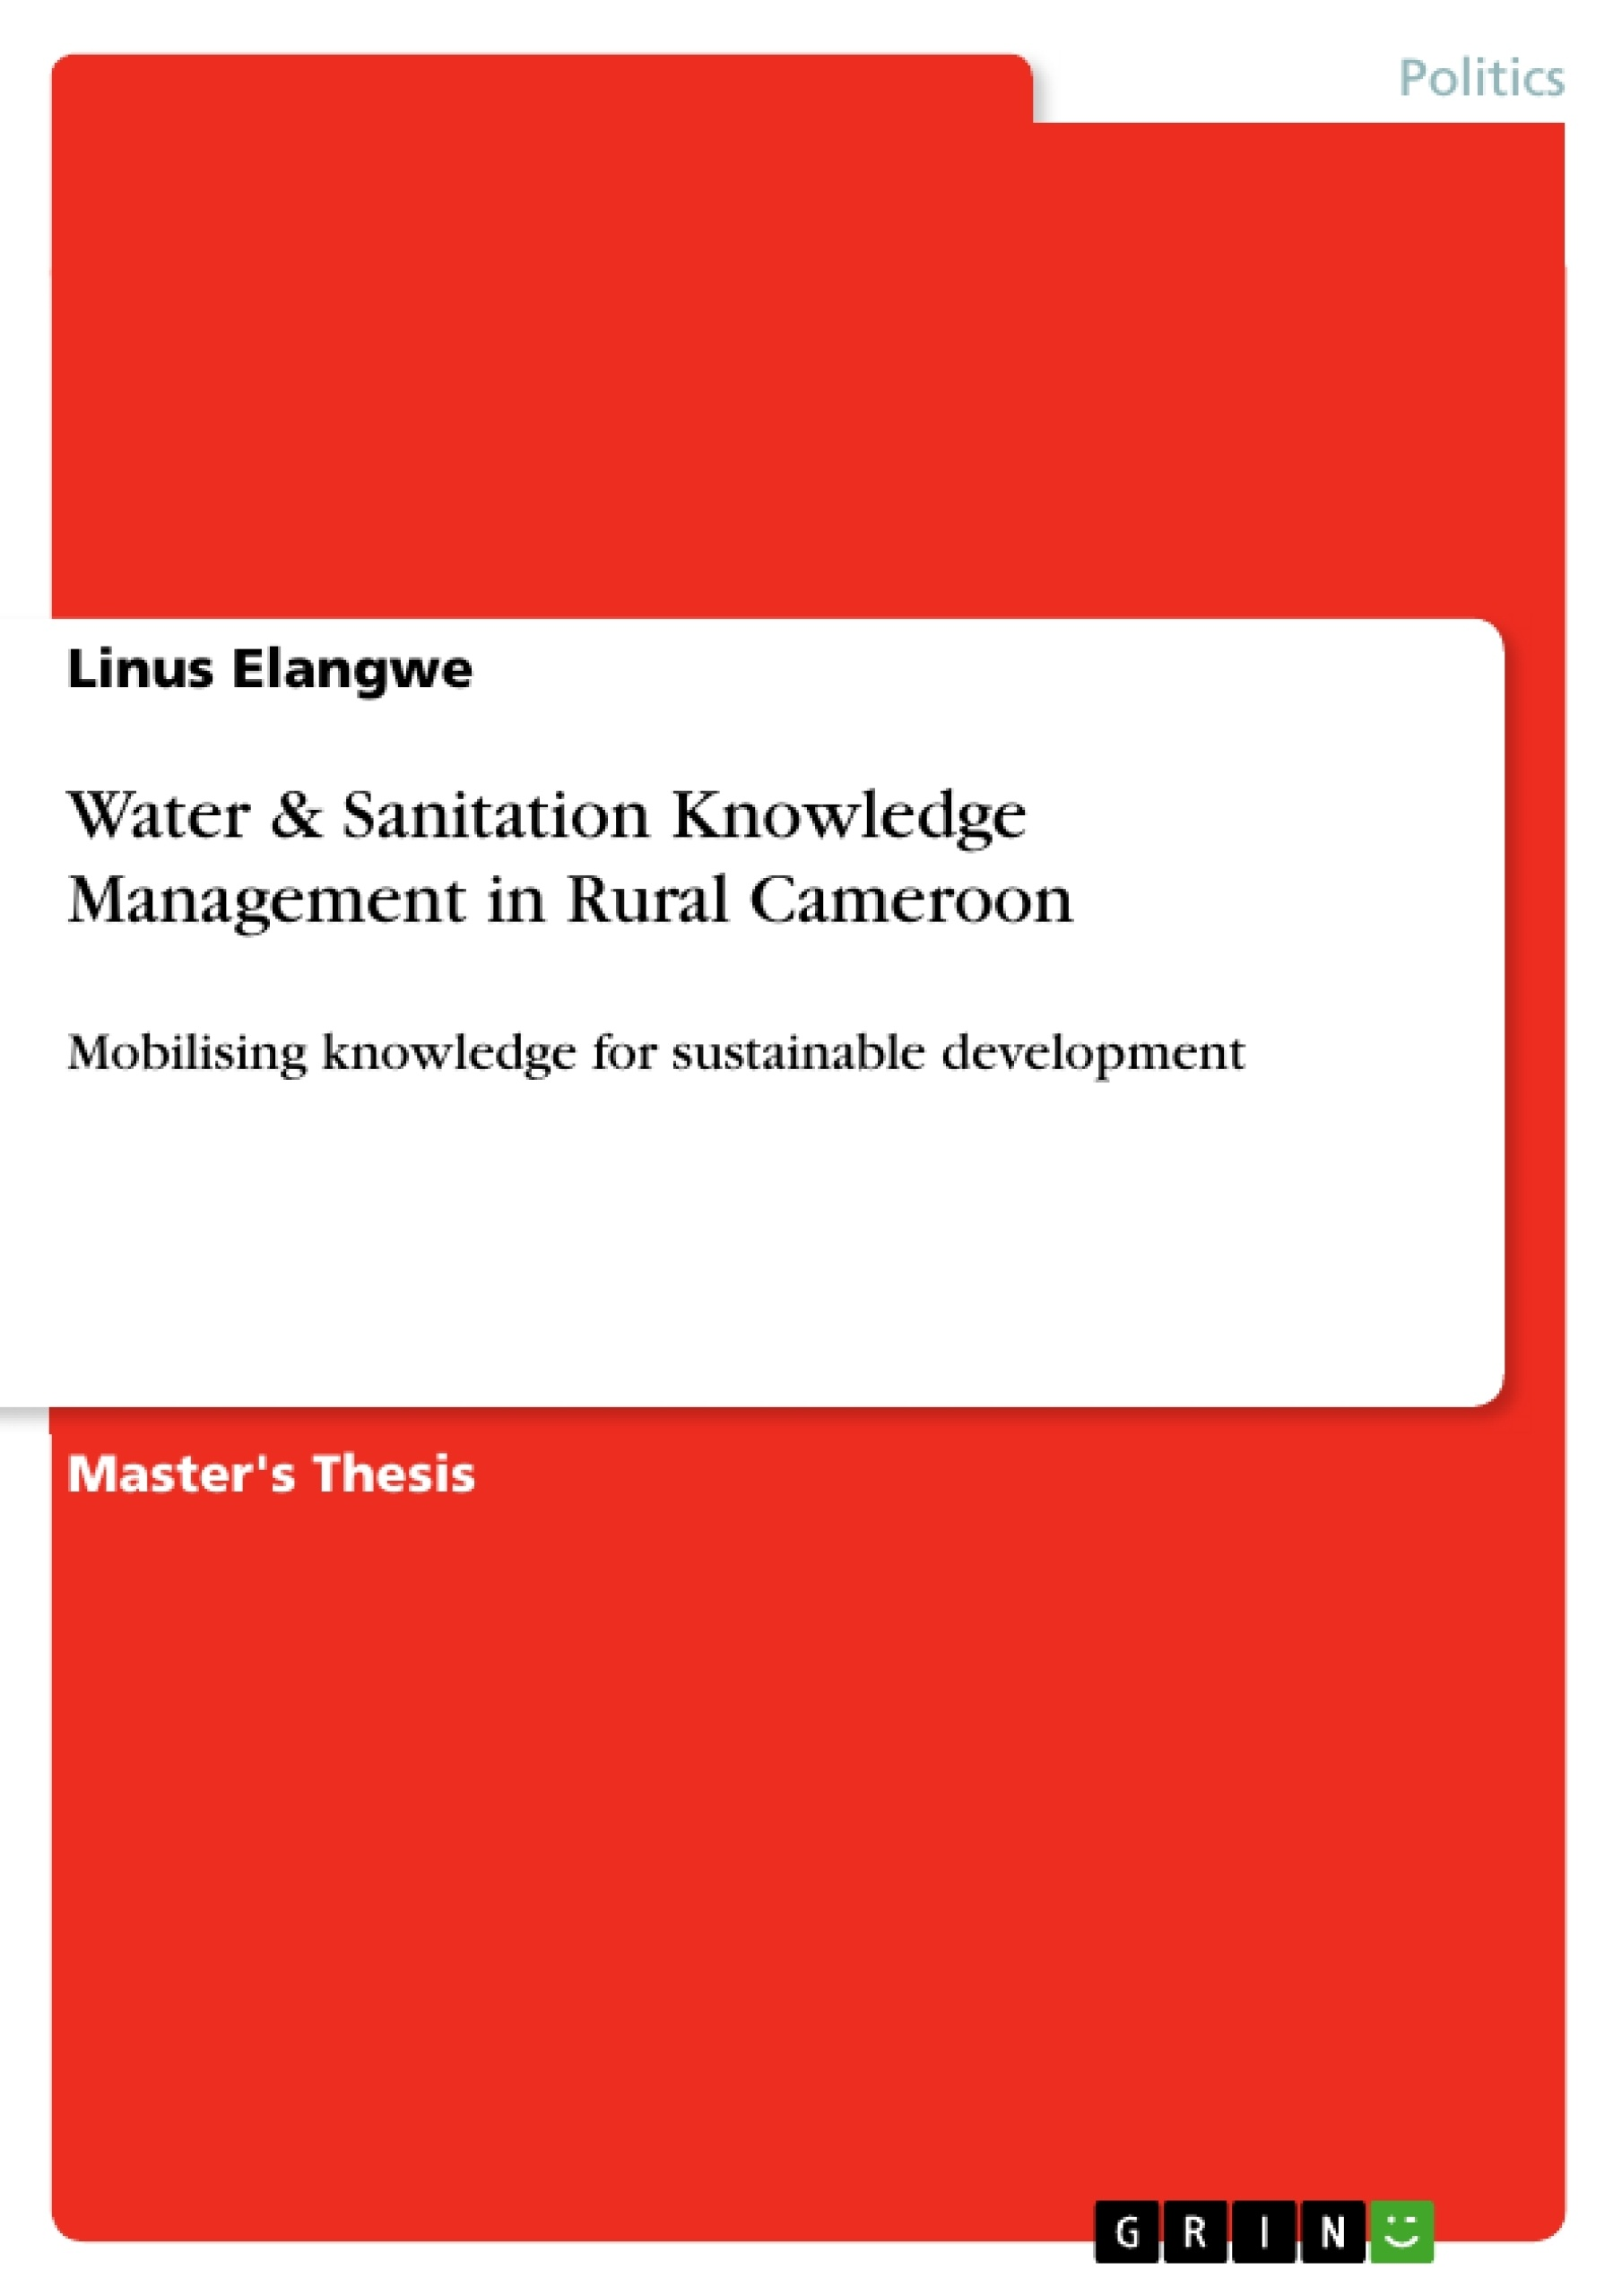 Title: Water & Sanitation Knowledge Management in Rural Cameroon